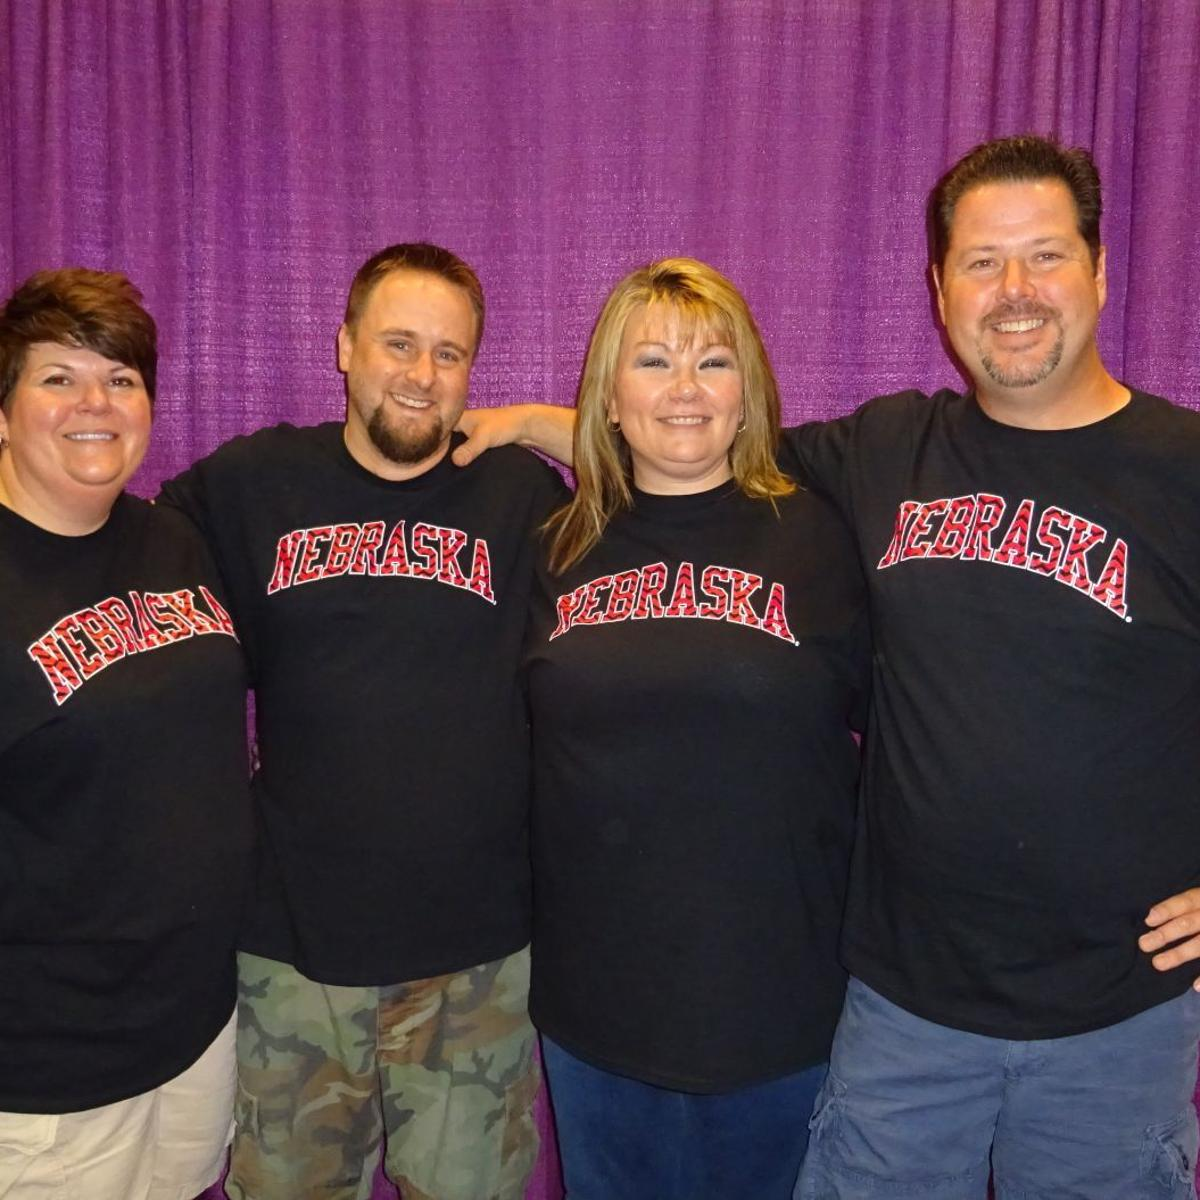 Lincoln dart players win in Las Vegas | Star City Sports